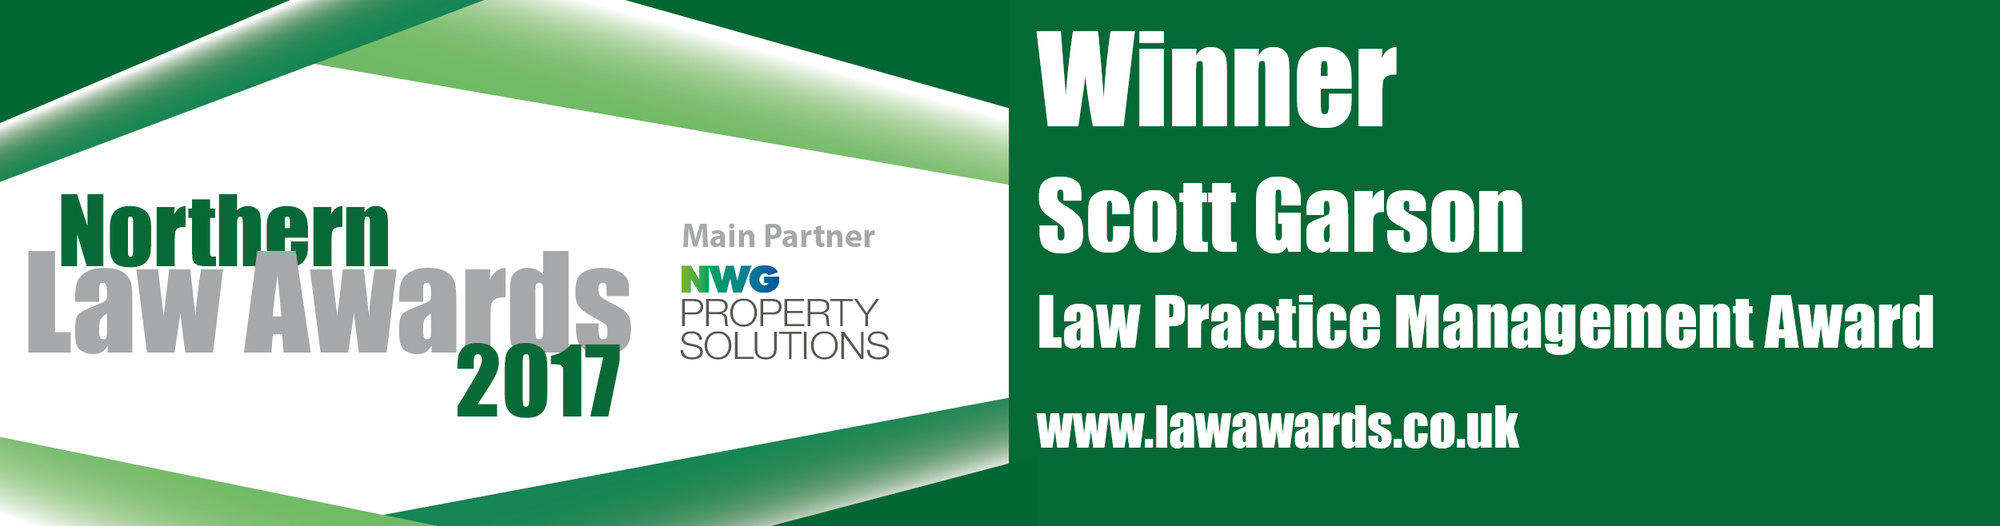 Winners of the Northern Law Awards 2017 for Law Practice Management